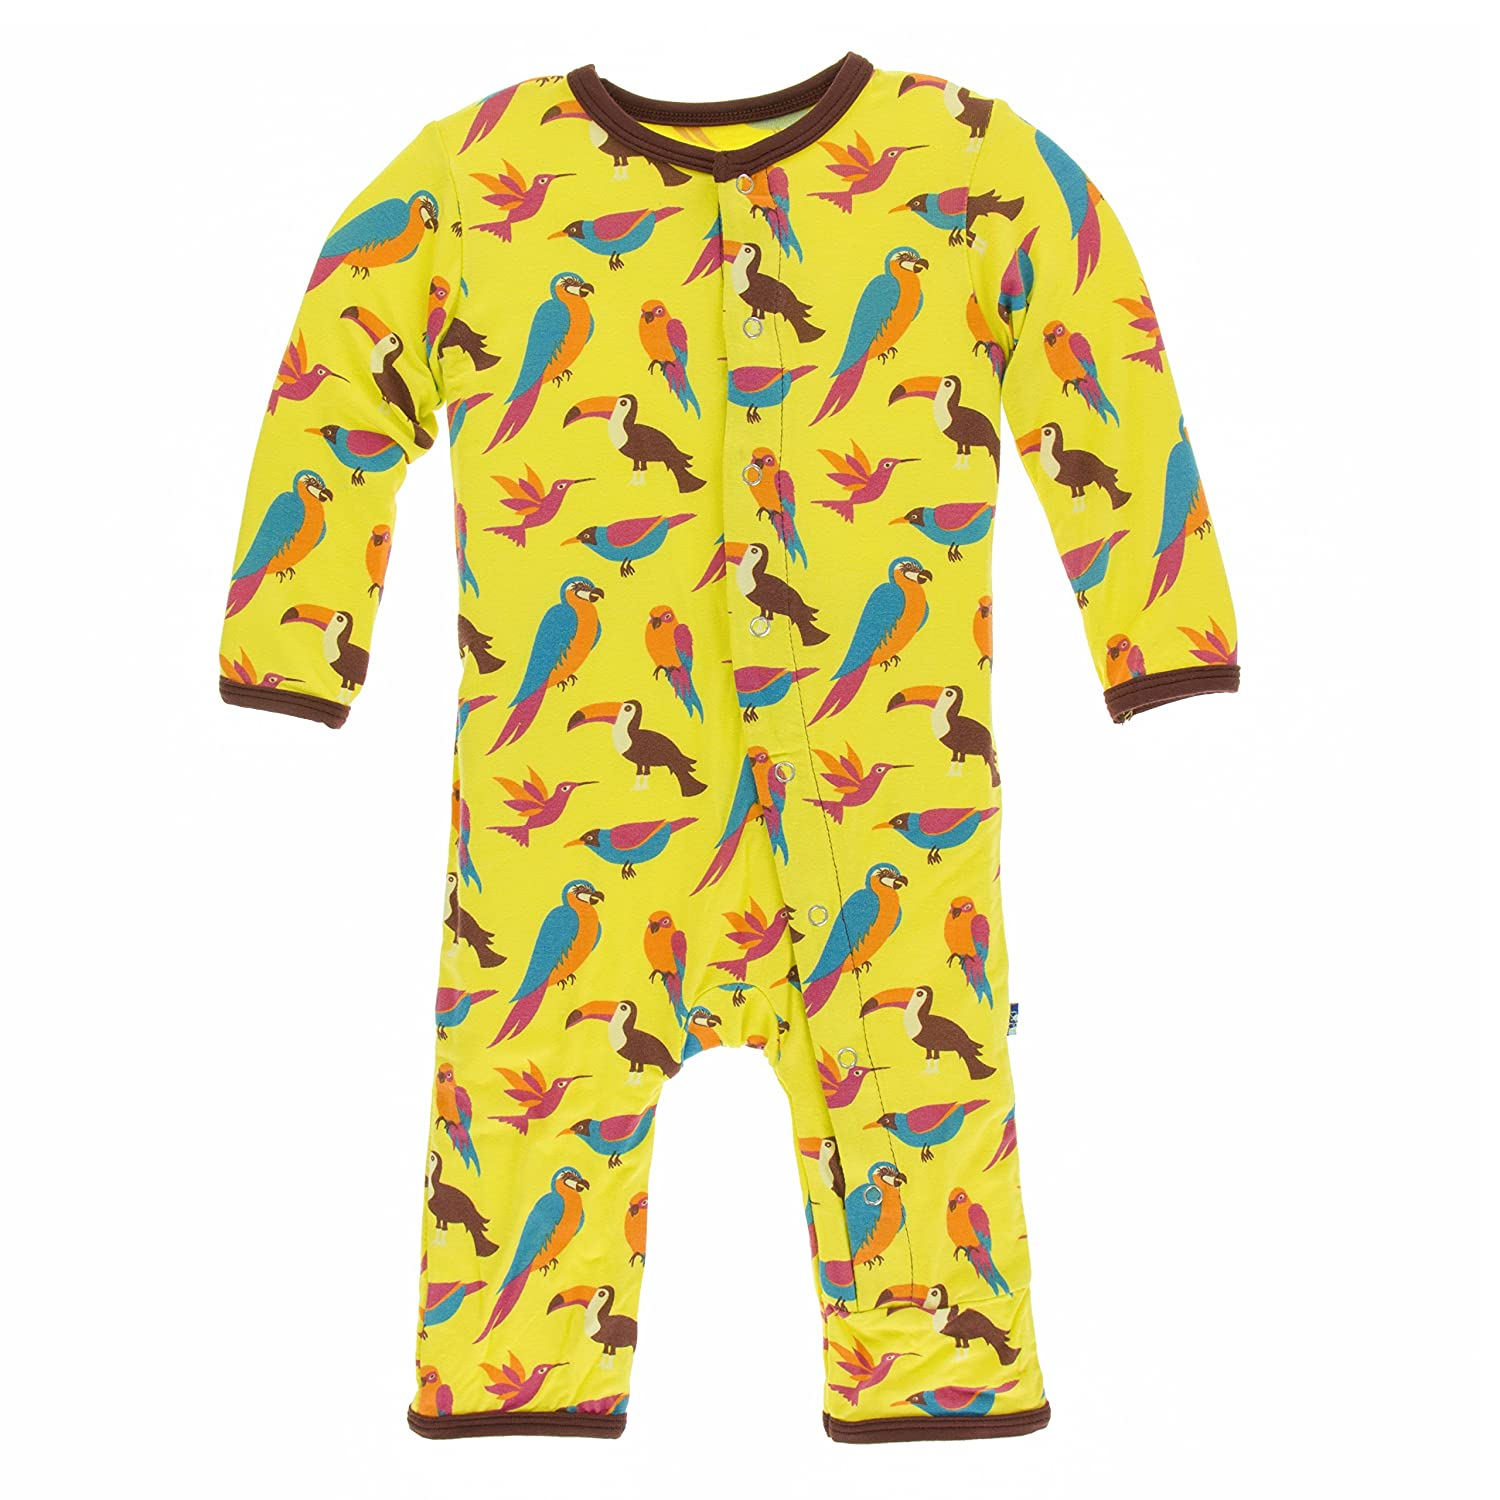 KicKee Pants Girls' Print Fitted Coverall Prd-kpca213-gdesy